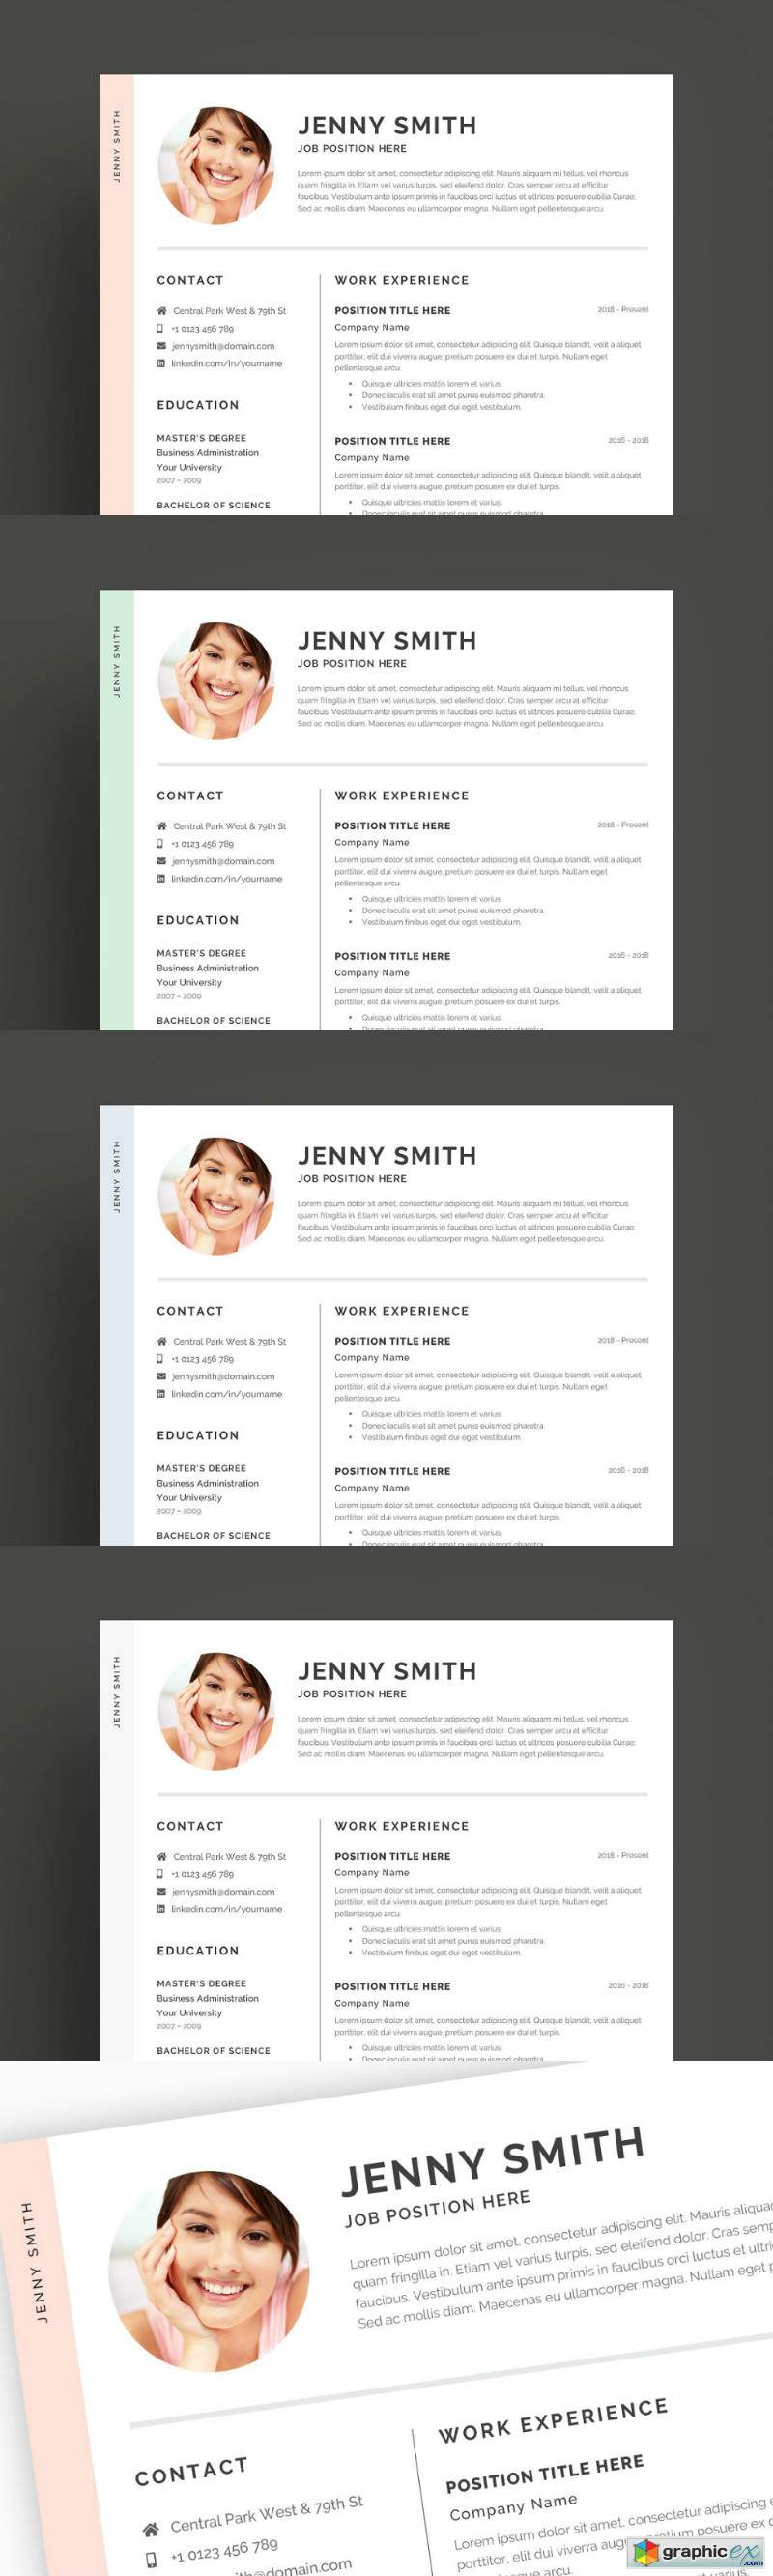 Resume Template Word Modern Clean CV 2684486